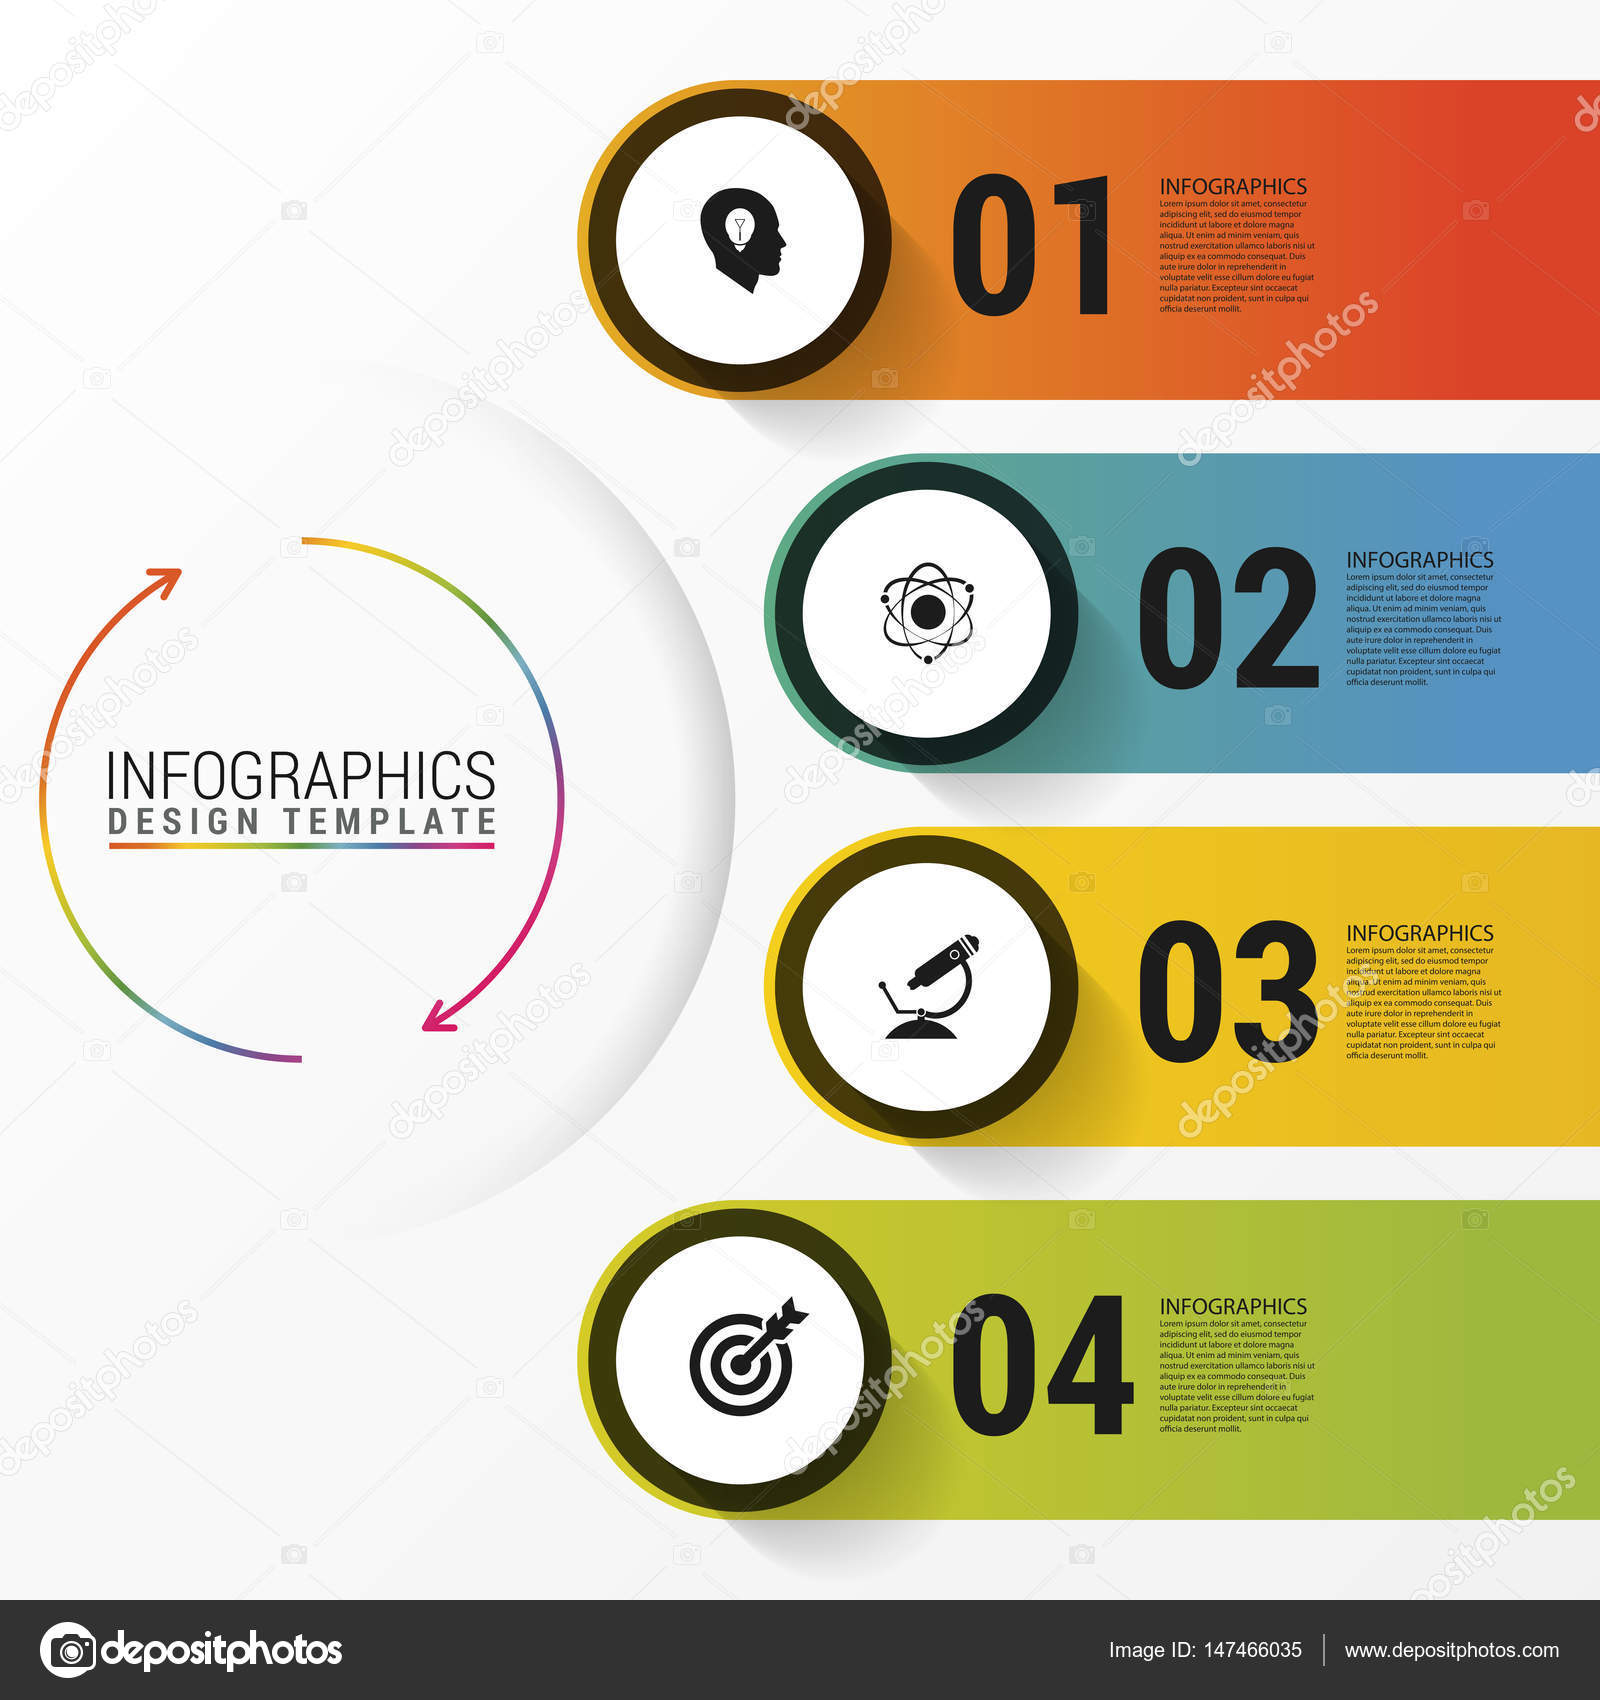 Infographic report template with icons business concept stock infographic report template with icons business concept stock vector cheaphphosting Choice Image